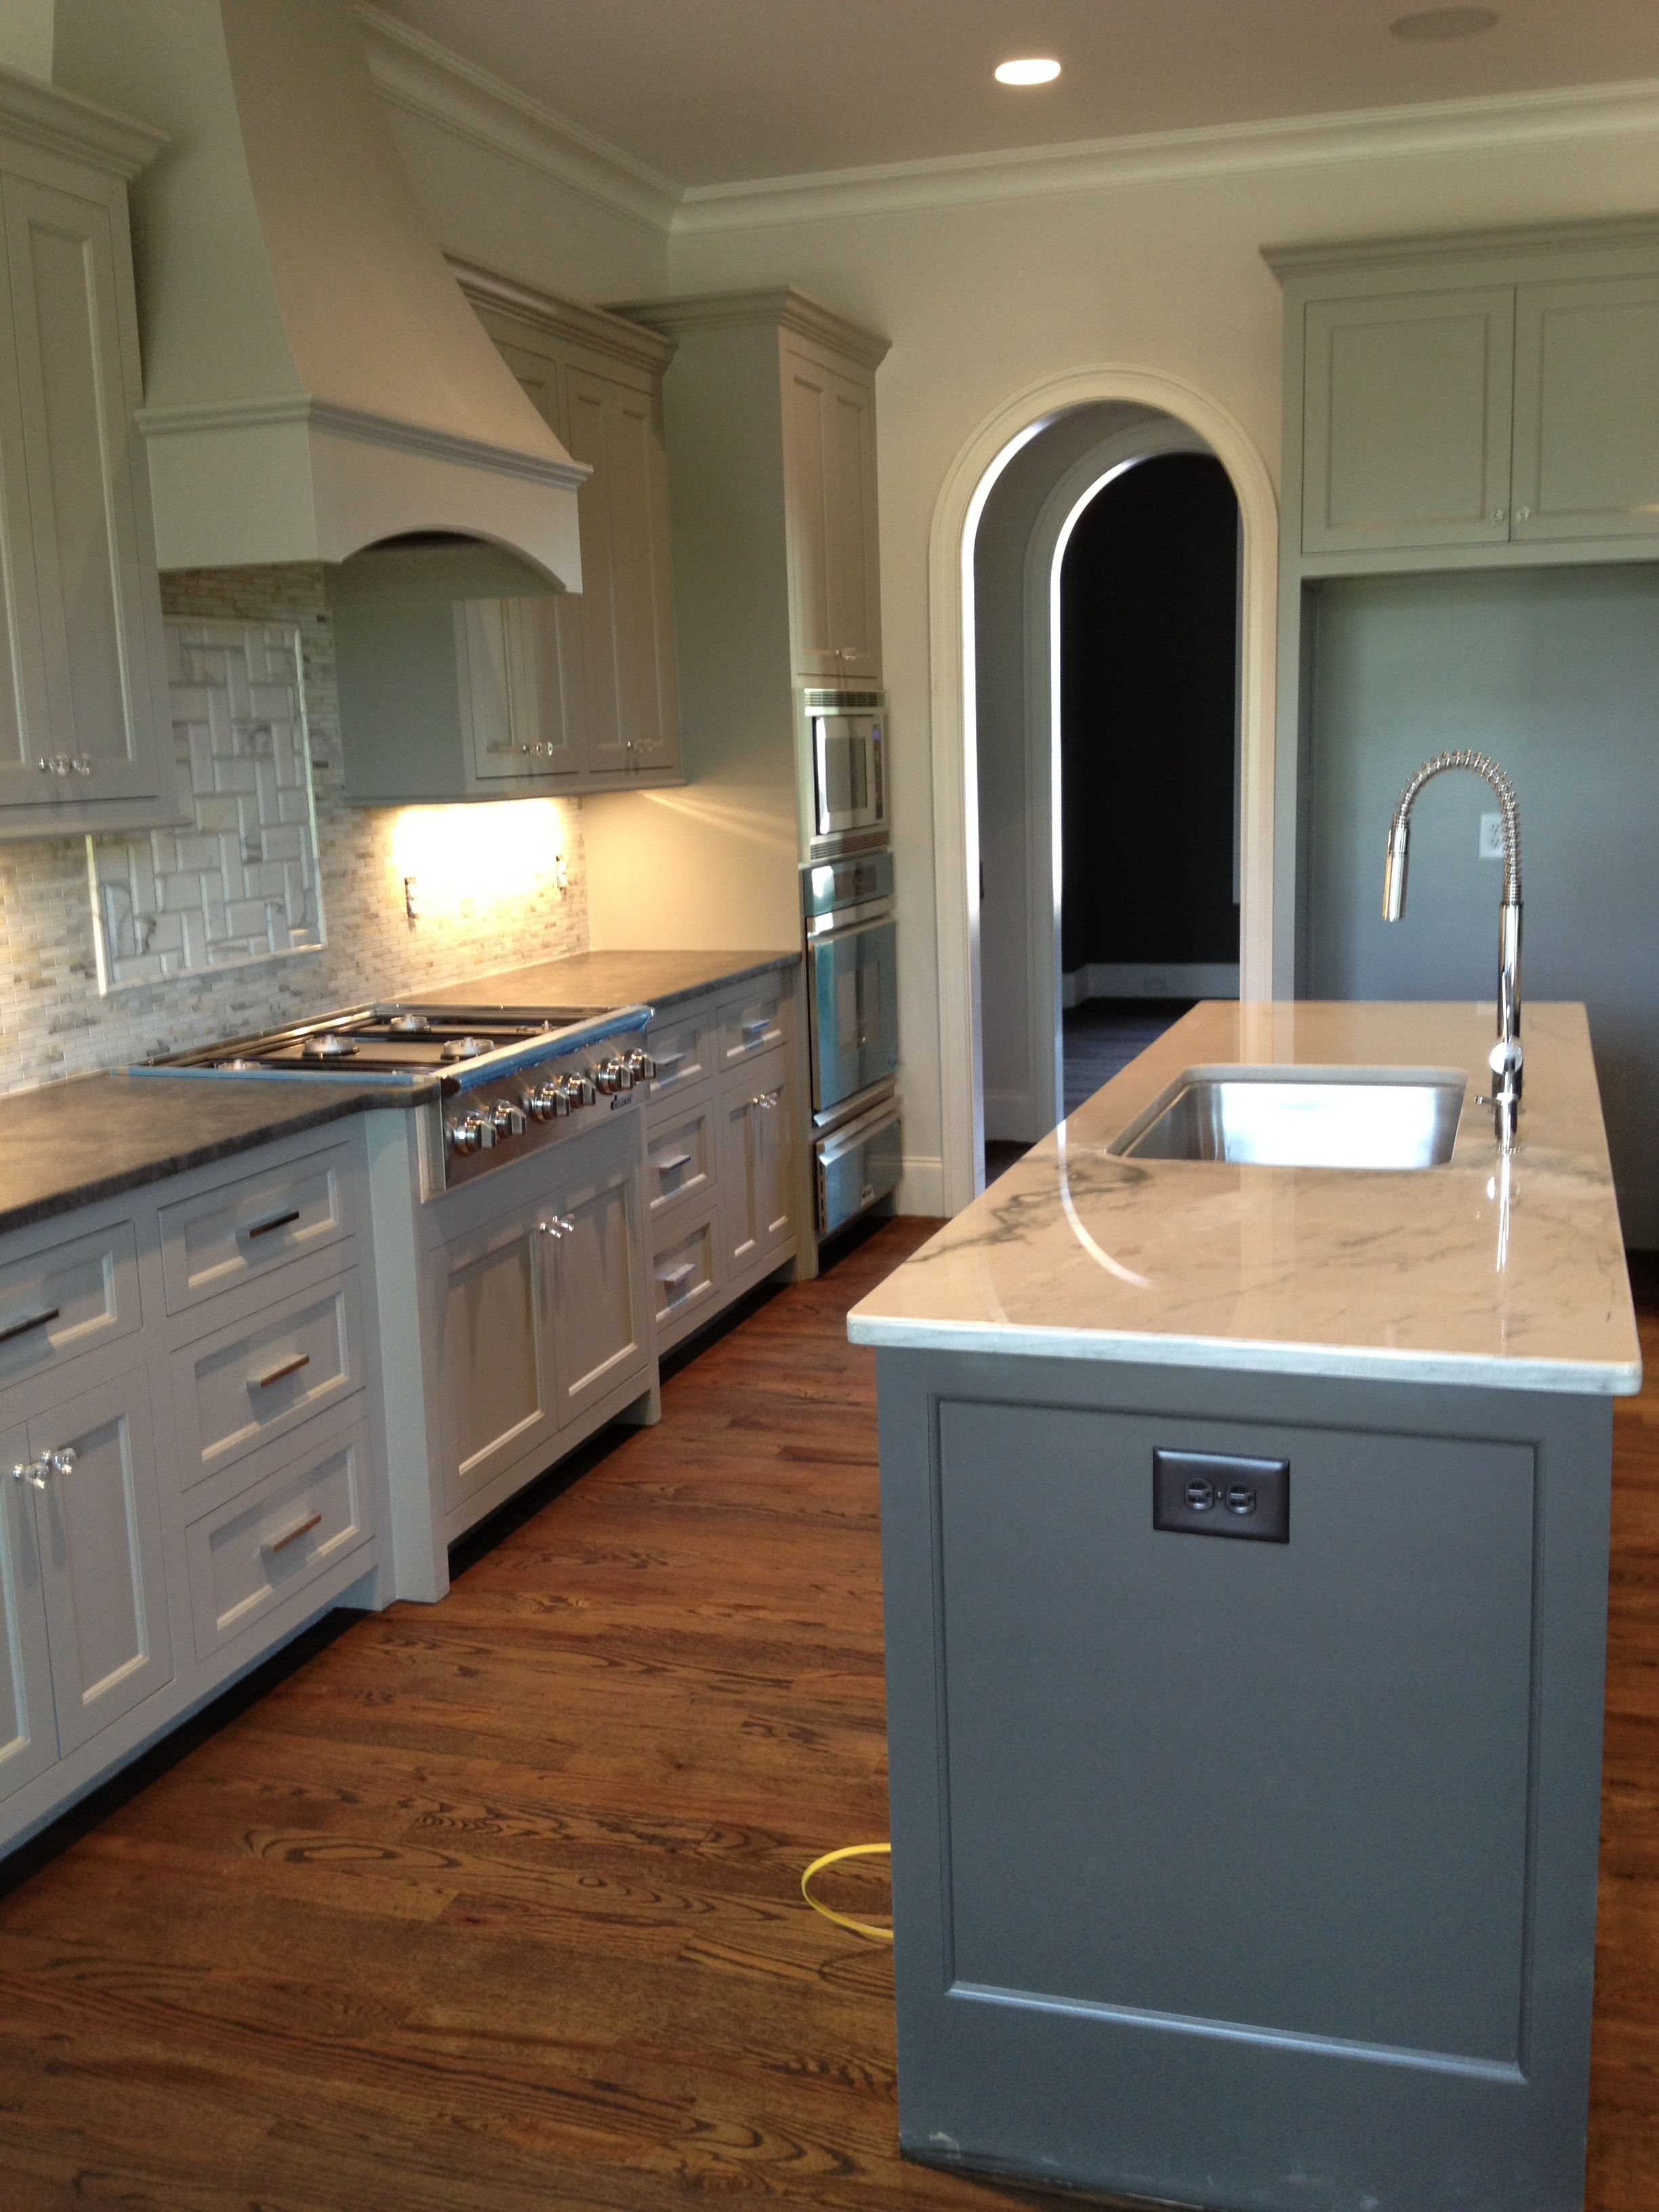 Sherwin Williams Paint For Kitchen Cabinets Warehouse Dorian Gray And Urbane Bronze